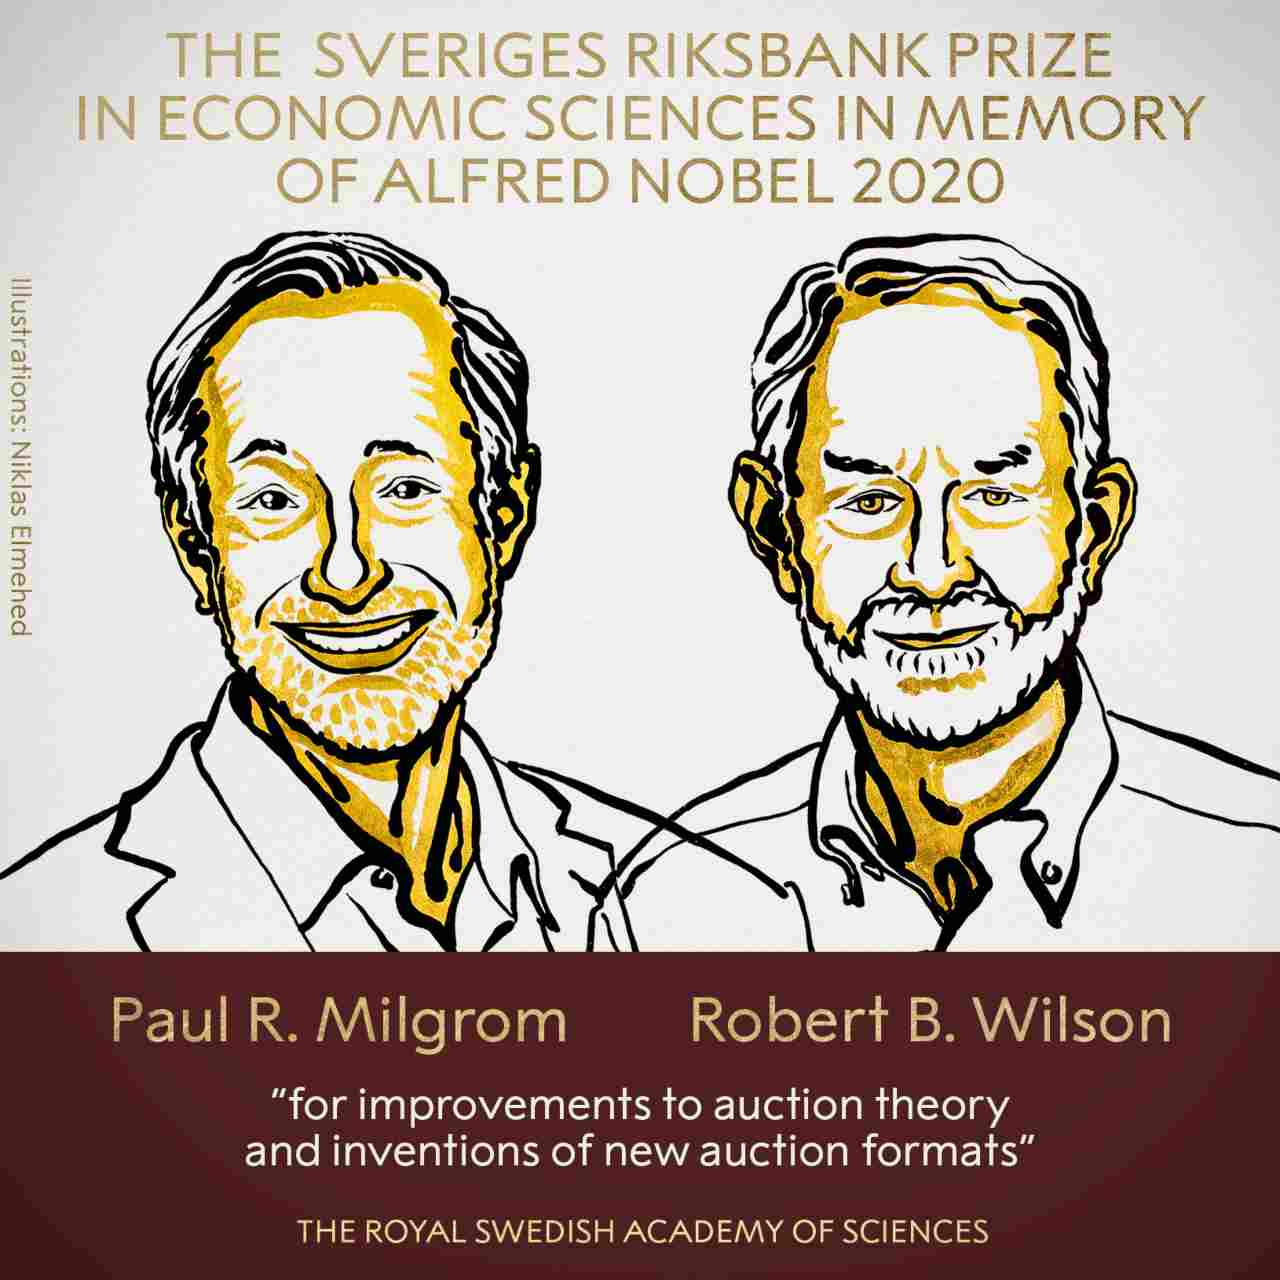 The 2020 Nobel Prize in Economics is awarded to Paul Milgrom and Robert Wilson for their contributions to auction theory. Image Credit: Niklas Elmehed/Royal Swedish Academy of Sciences